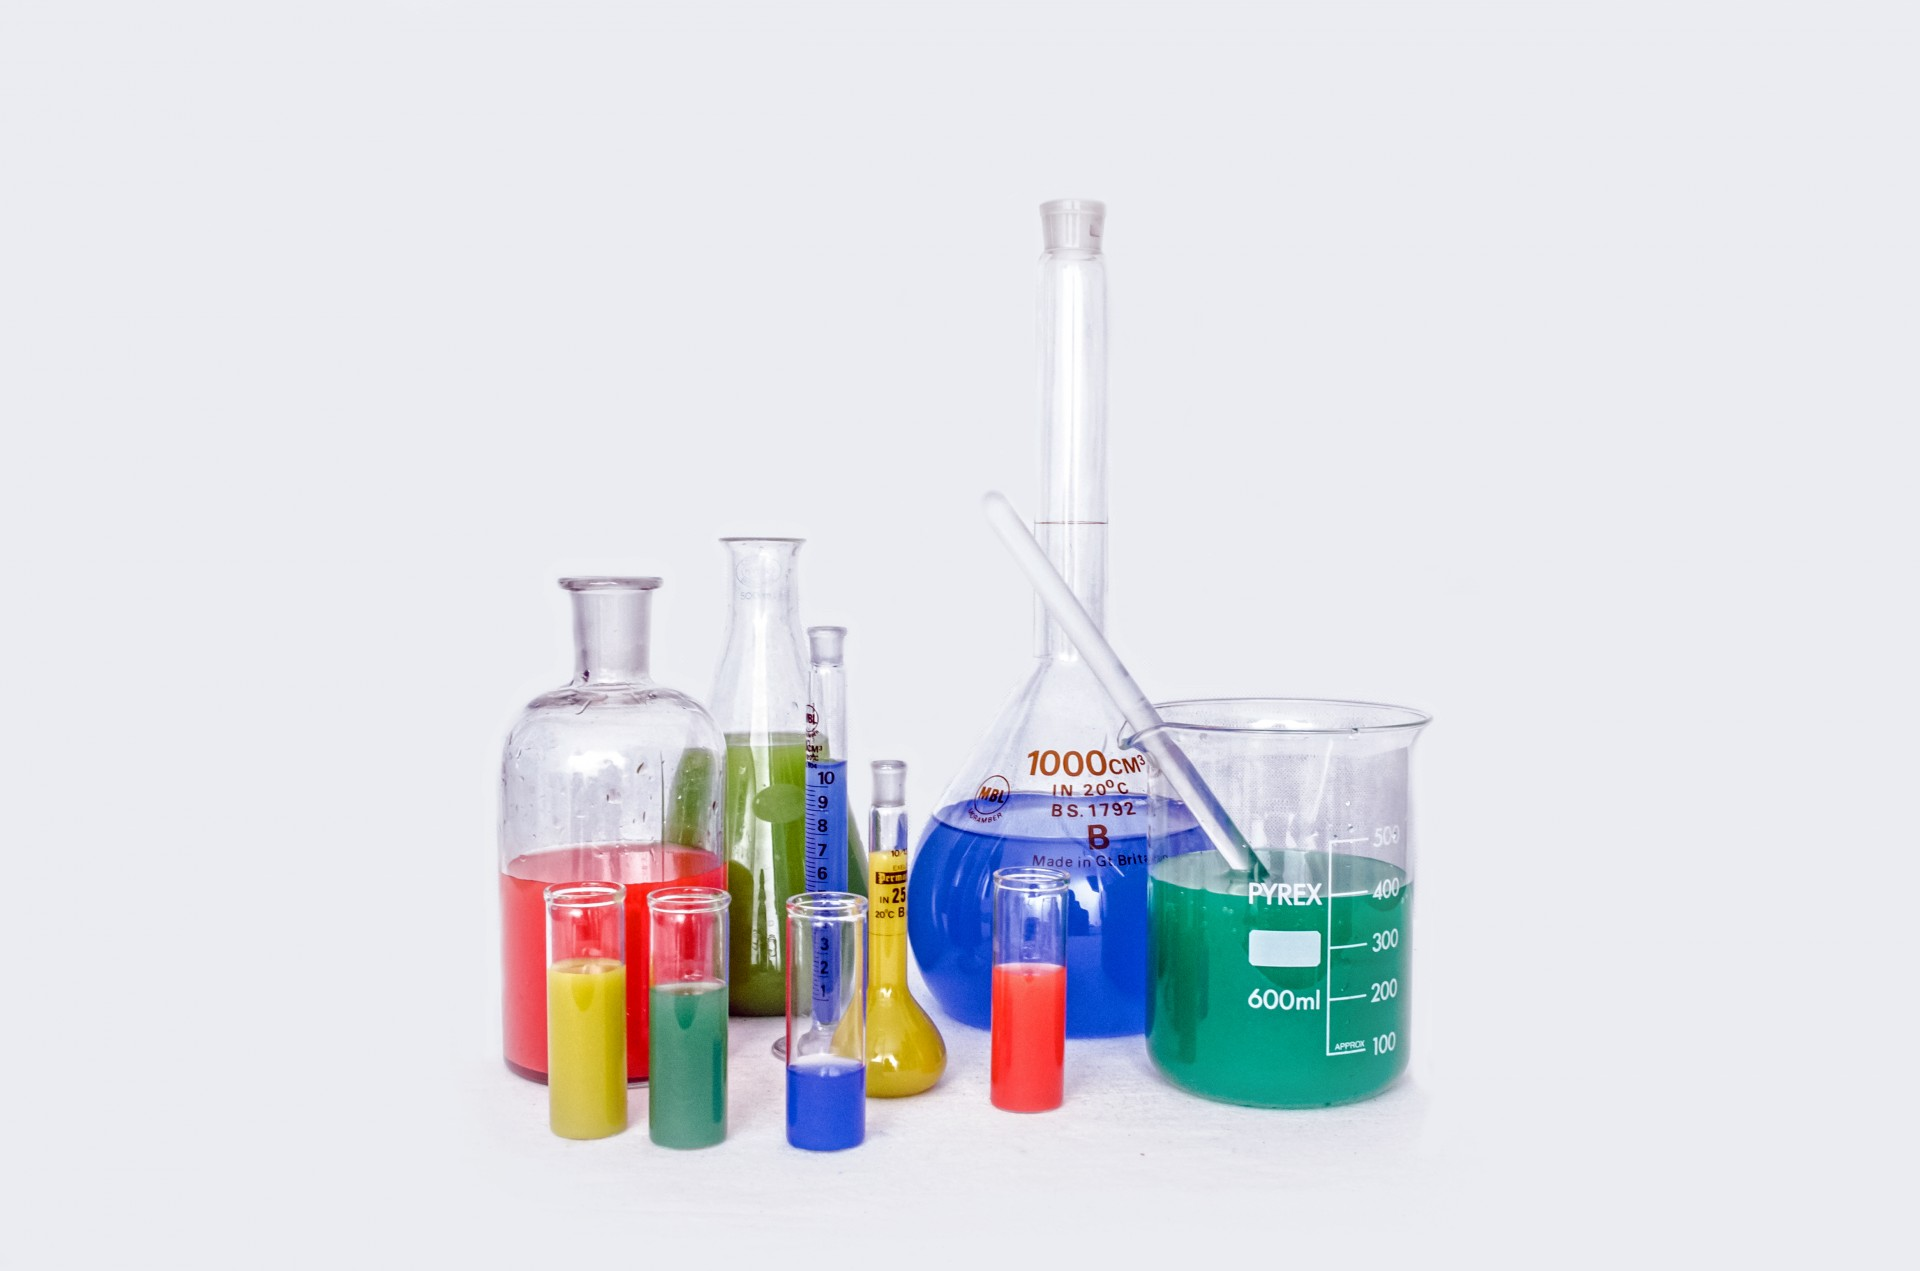 Laboratory Glassware Free Stock Photo